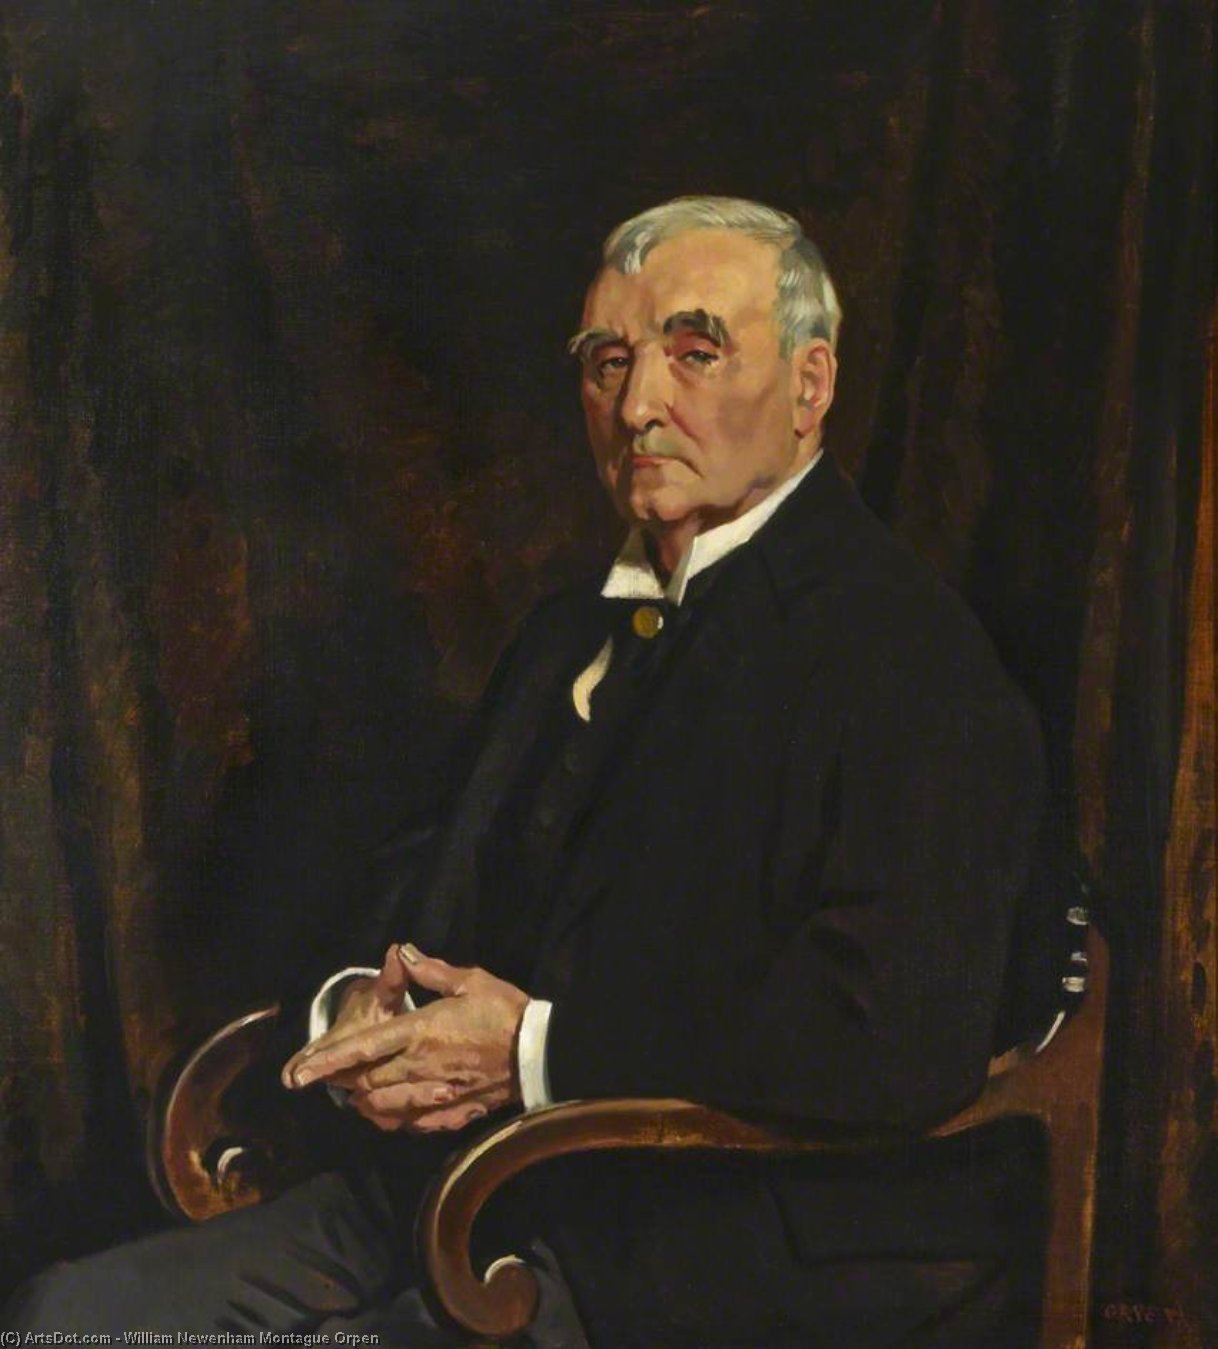 大卫 劳埃德  罗伯茨  通过 William Newenham Montague Orpen (1878-1931, Ireland) | ArtsDot.com